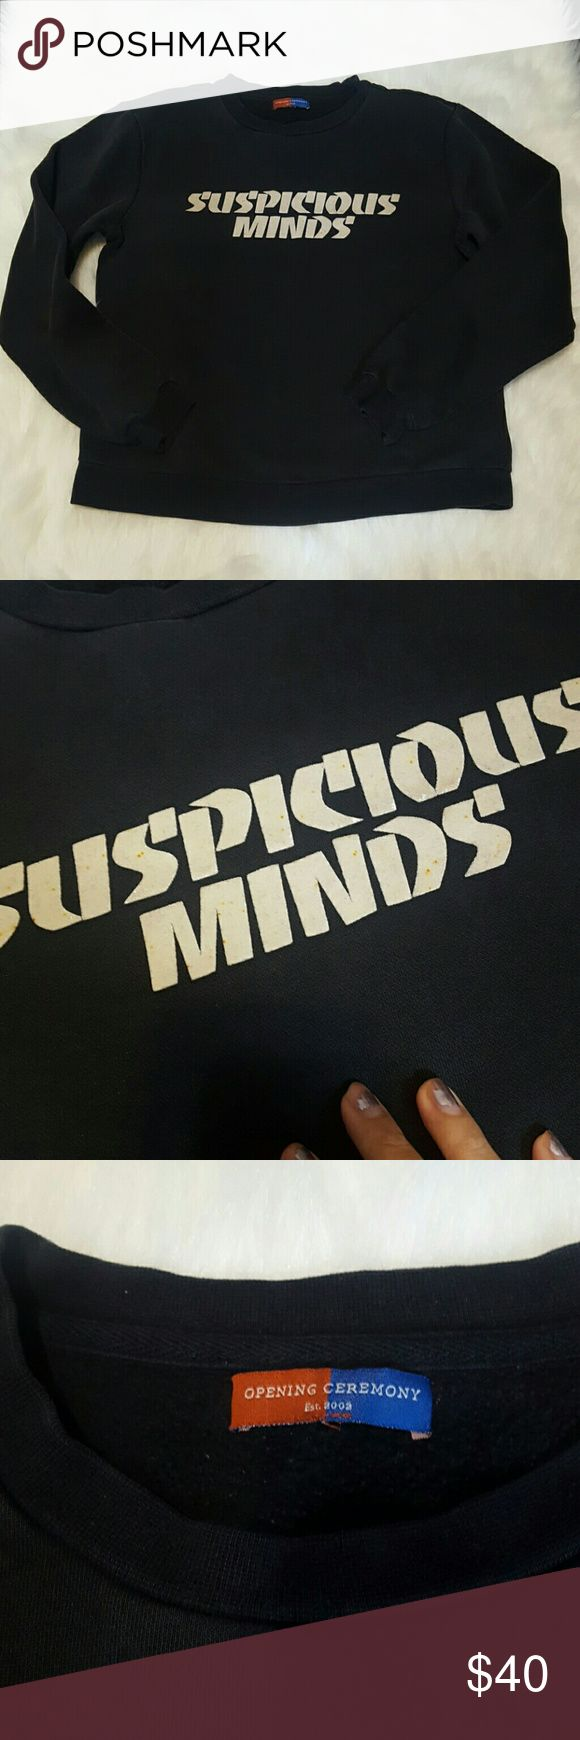 Suspicious Minds sweater Opening Ceremony sweater. Faded and stainded on the lettering. Suppossed to be white letterd but they are gray with spots. Still cool if you want to rock that grunge chic look. Opening Ceremony Sweaters Crew & Scoop Necks